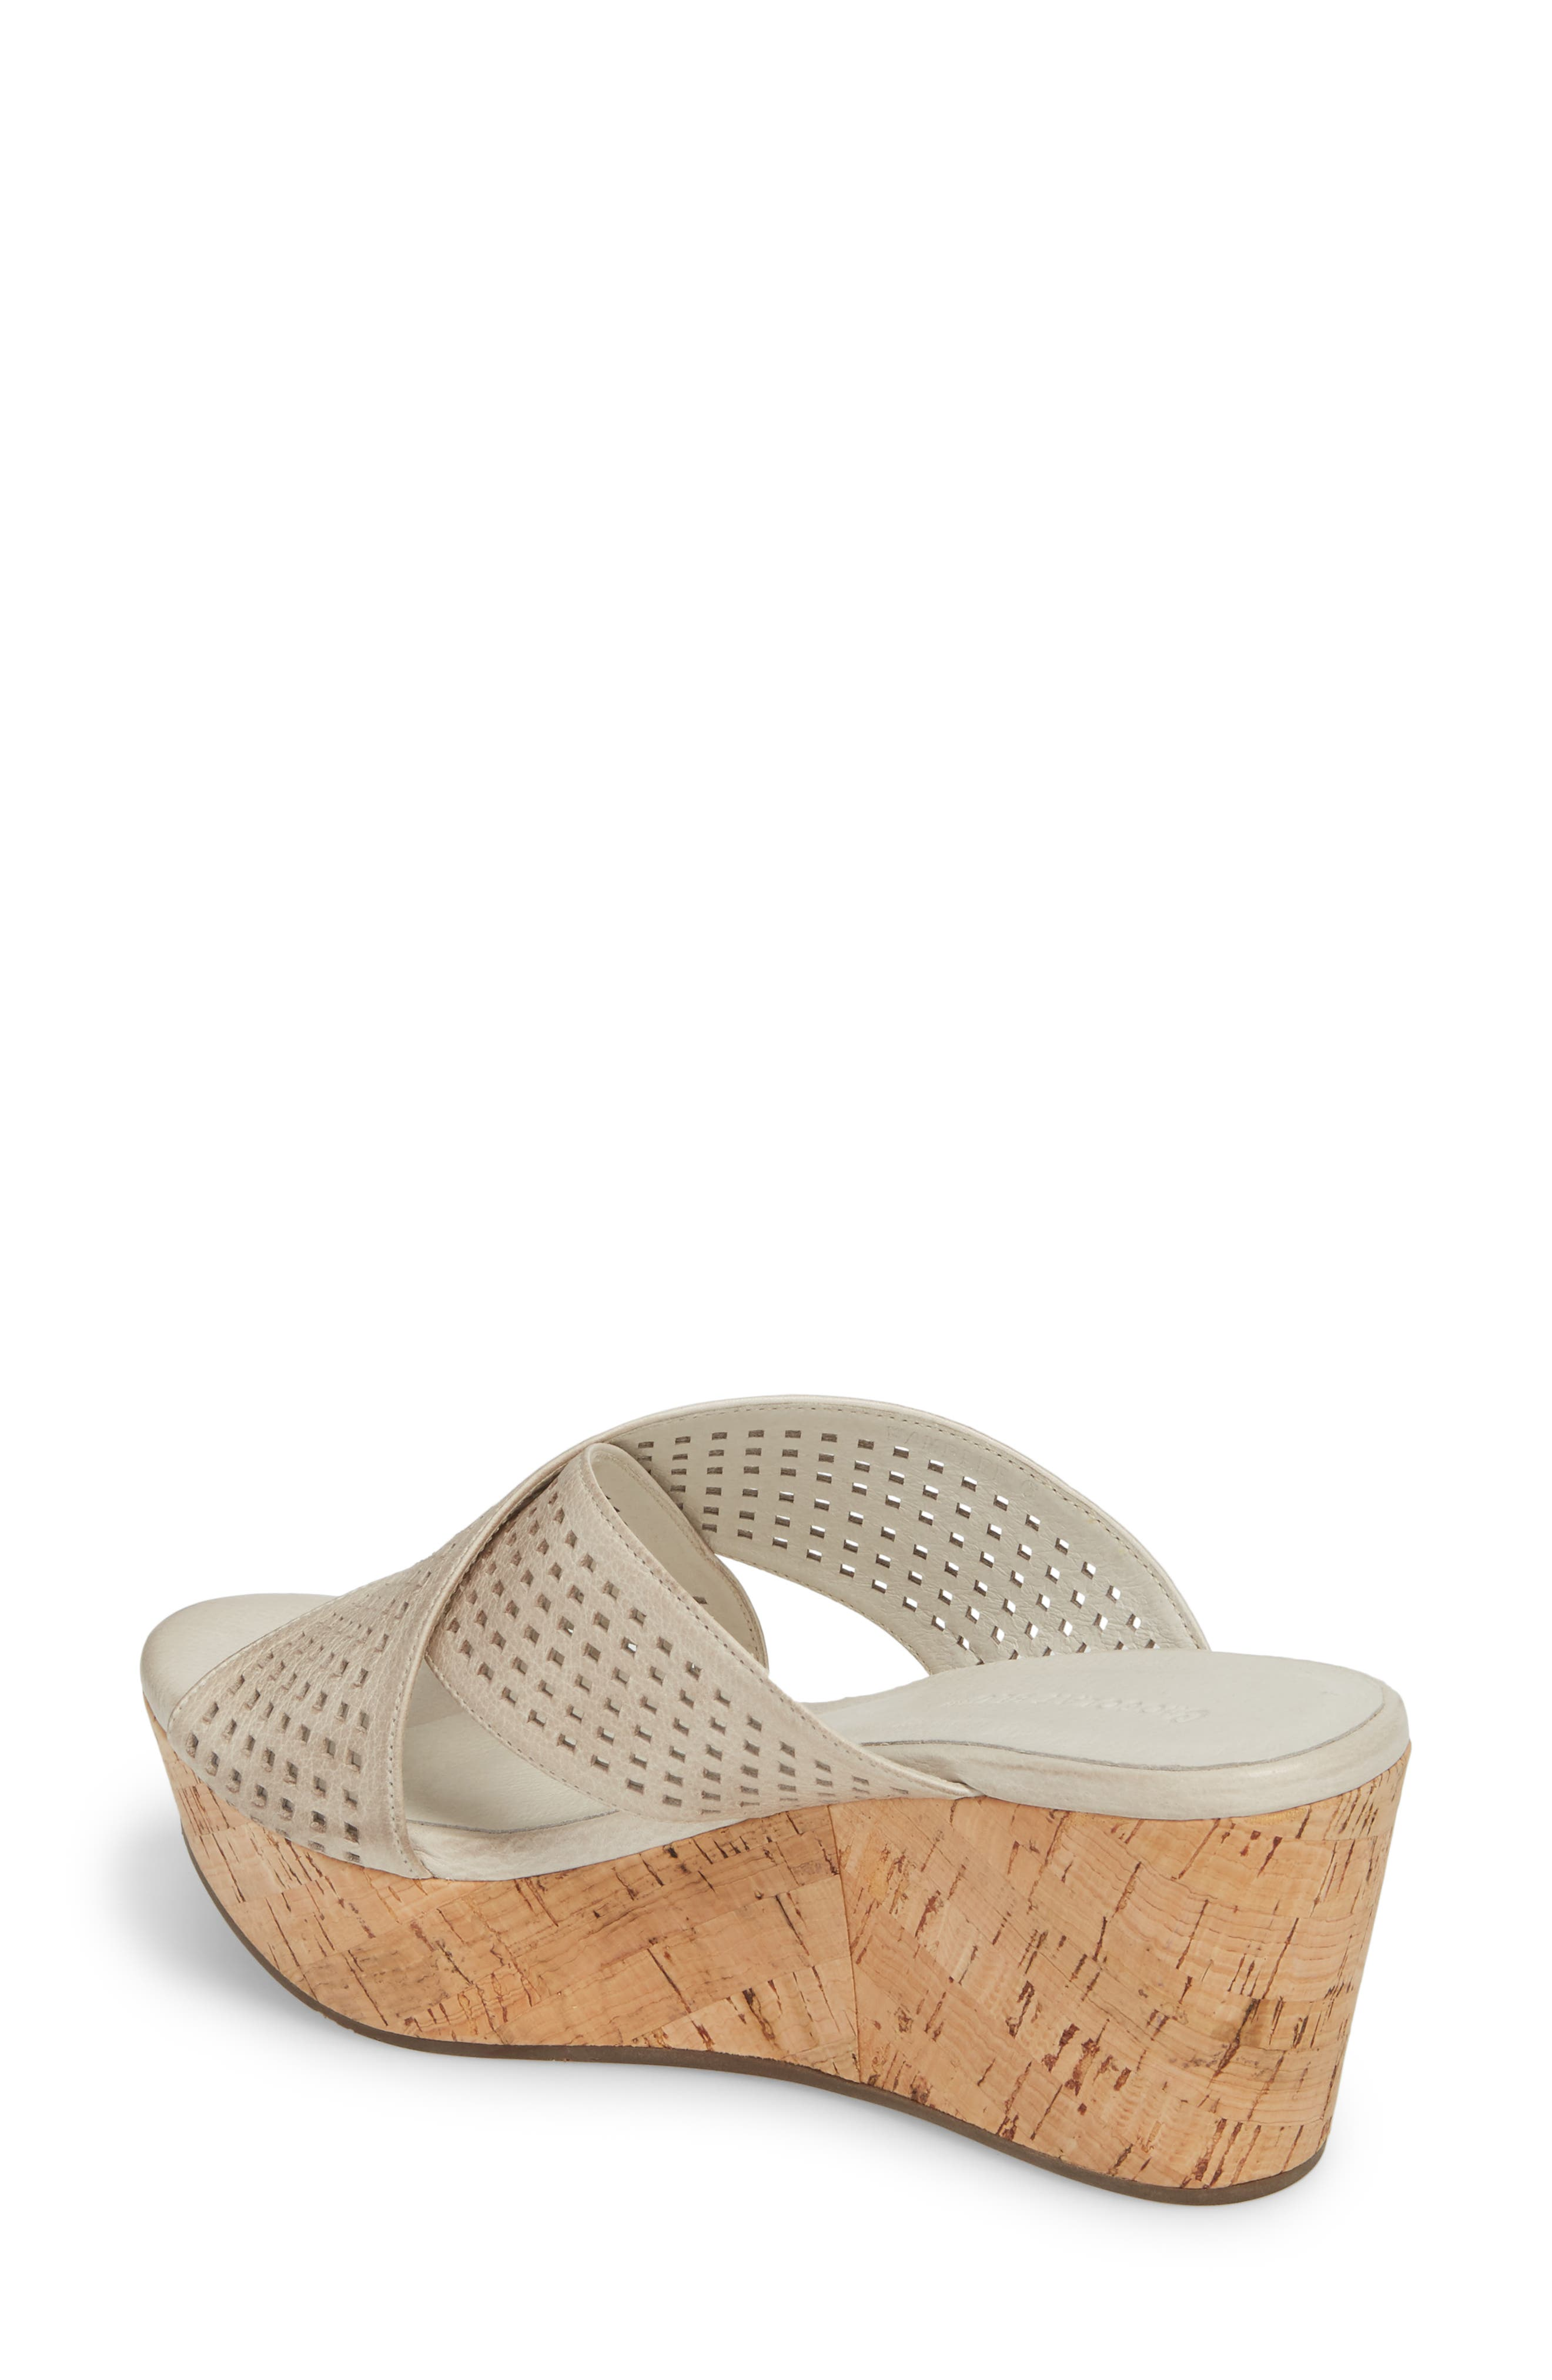 Wamblee Wedge Sandal,                             Alternate thumbnail 2, color,                             Ice Leather